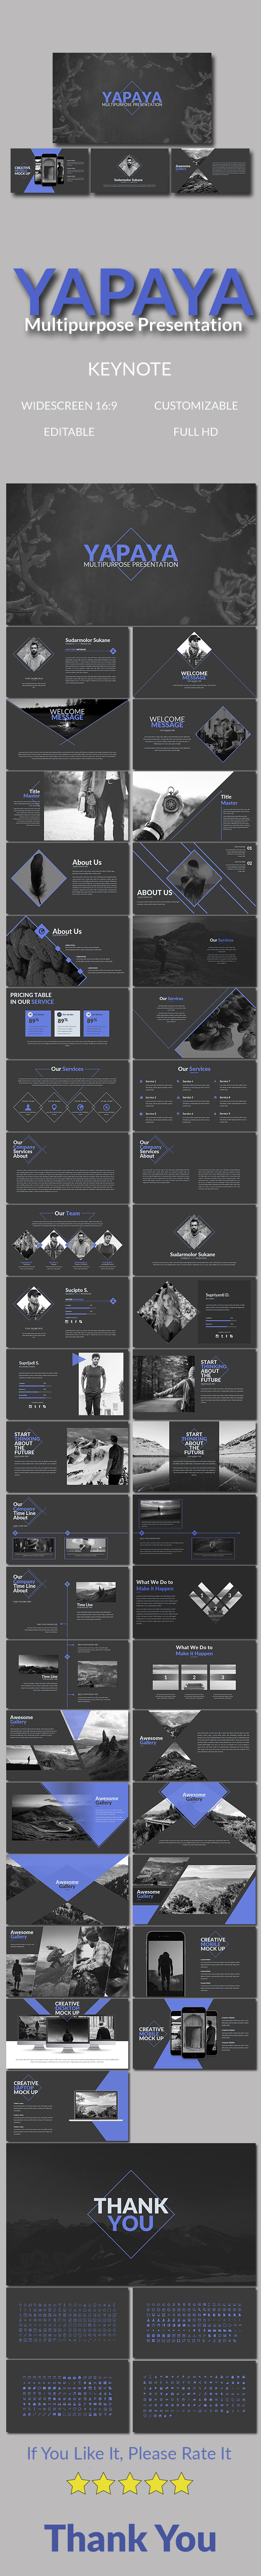 Yapaya Multipurpose Presentation - Abstract Keynote Templates